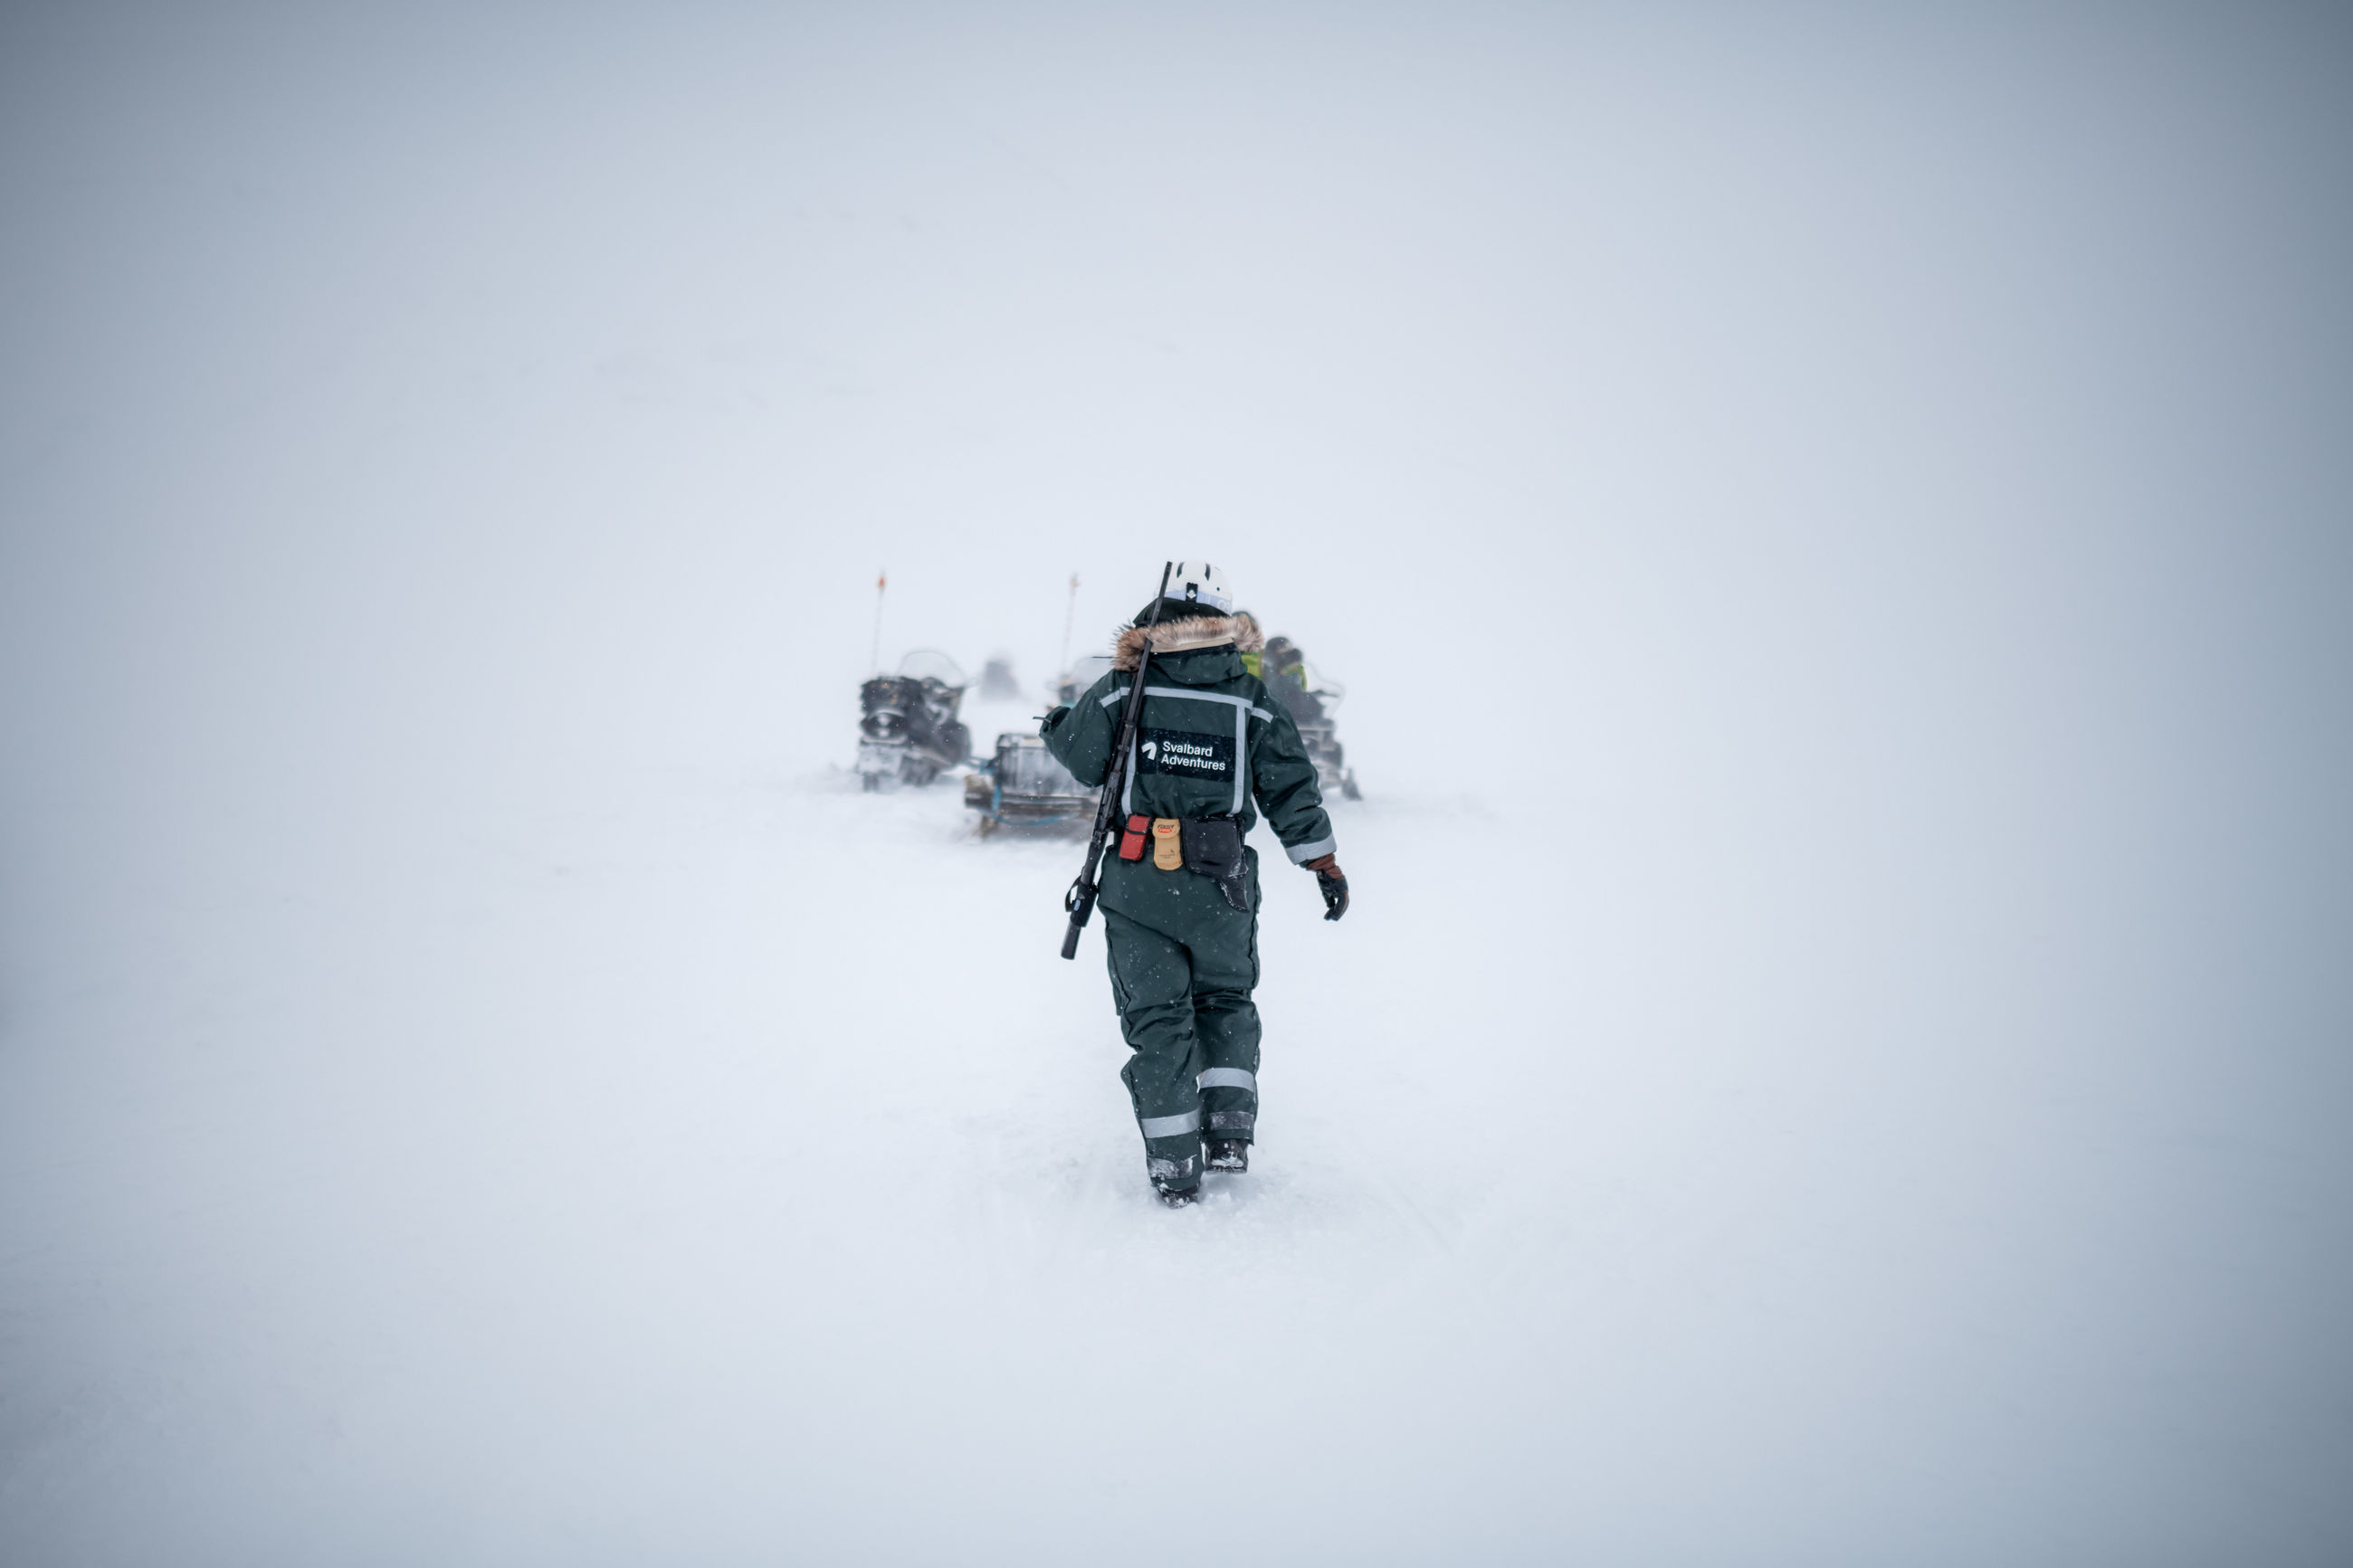 winter, snow, cold temperature, one person, leisure activity, warm clothing, hiking, clothing, copy space, walking, real people, lifestyles, rear view, adventure, nature, backpack, day, activity, extreme weather